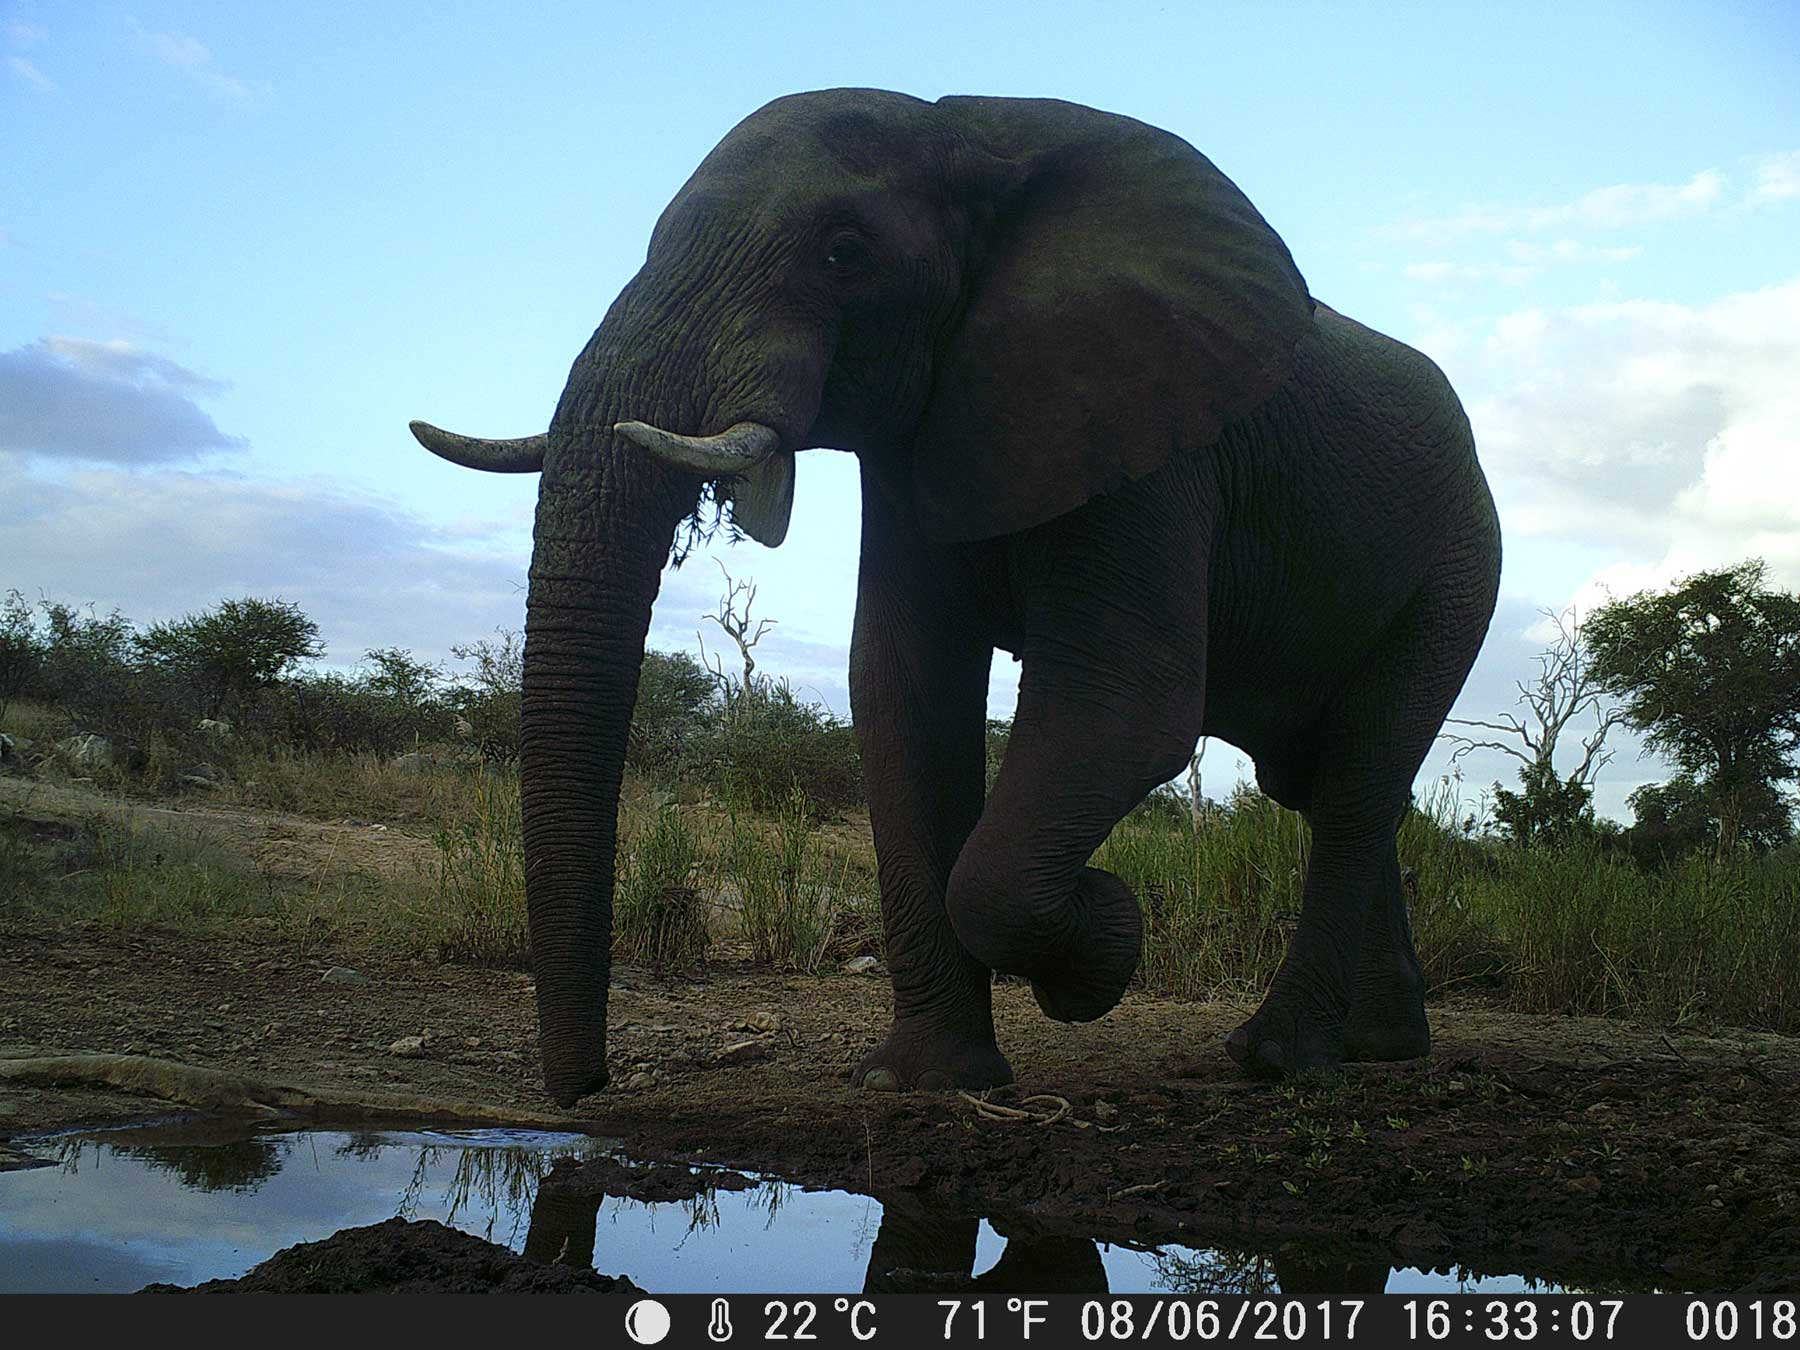 #CameraTrapTales : Ezulwini Game Lodges Films Lions and Ellies